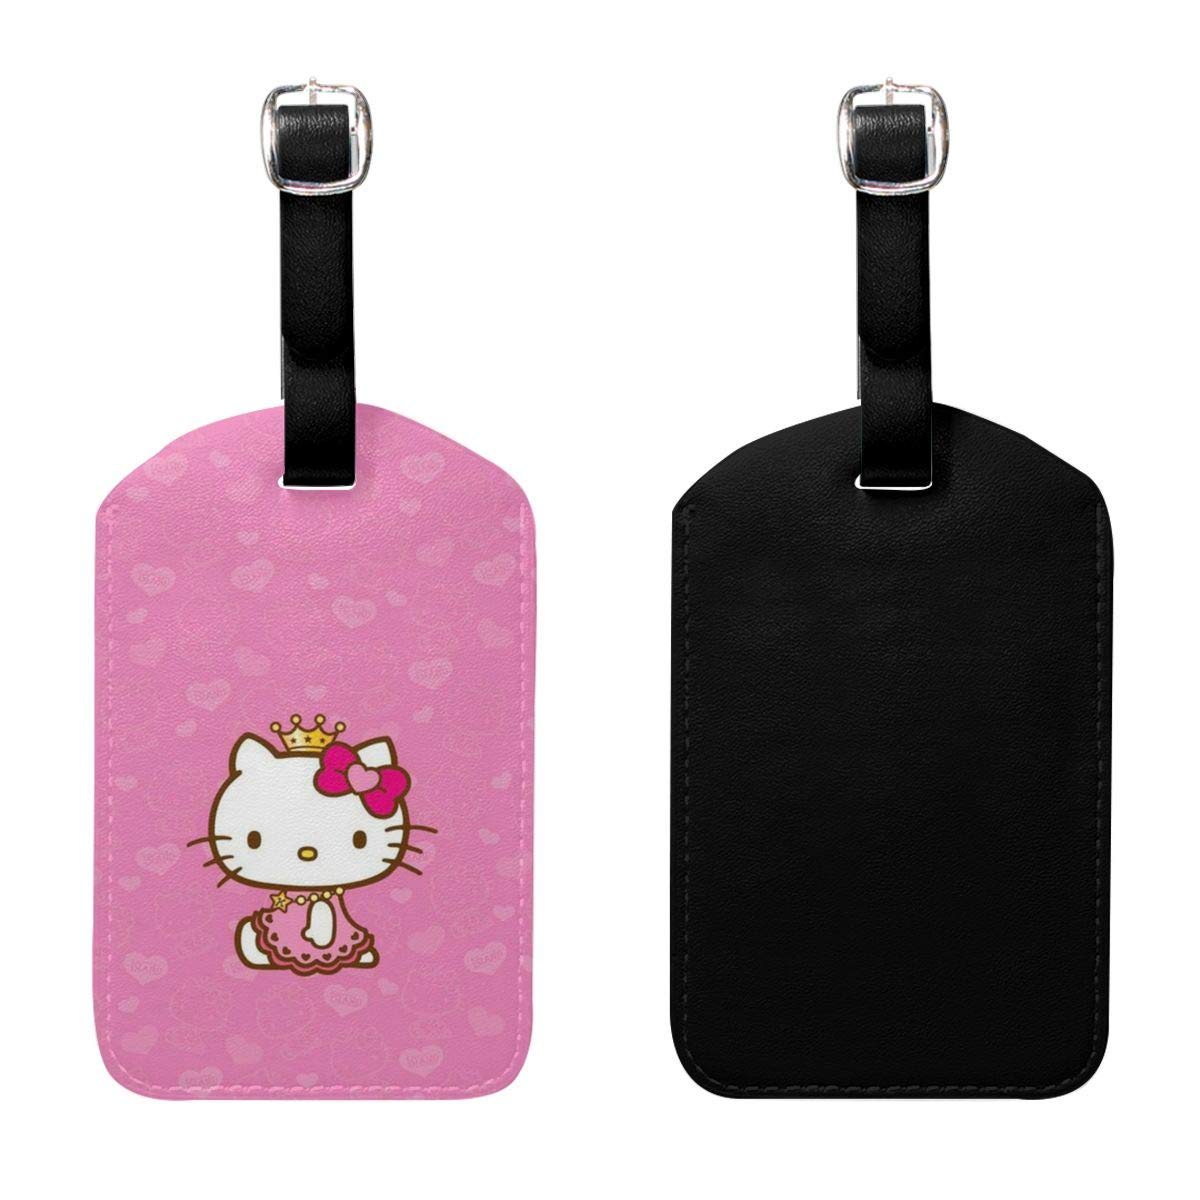 Set of 2 PU Leather Luggage Tags Queen Hello Kitty Suitcase Labels Bag Adjustable Leather Strap Travel Accessories